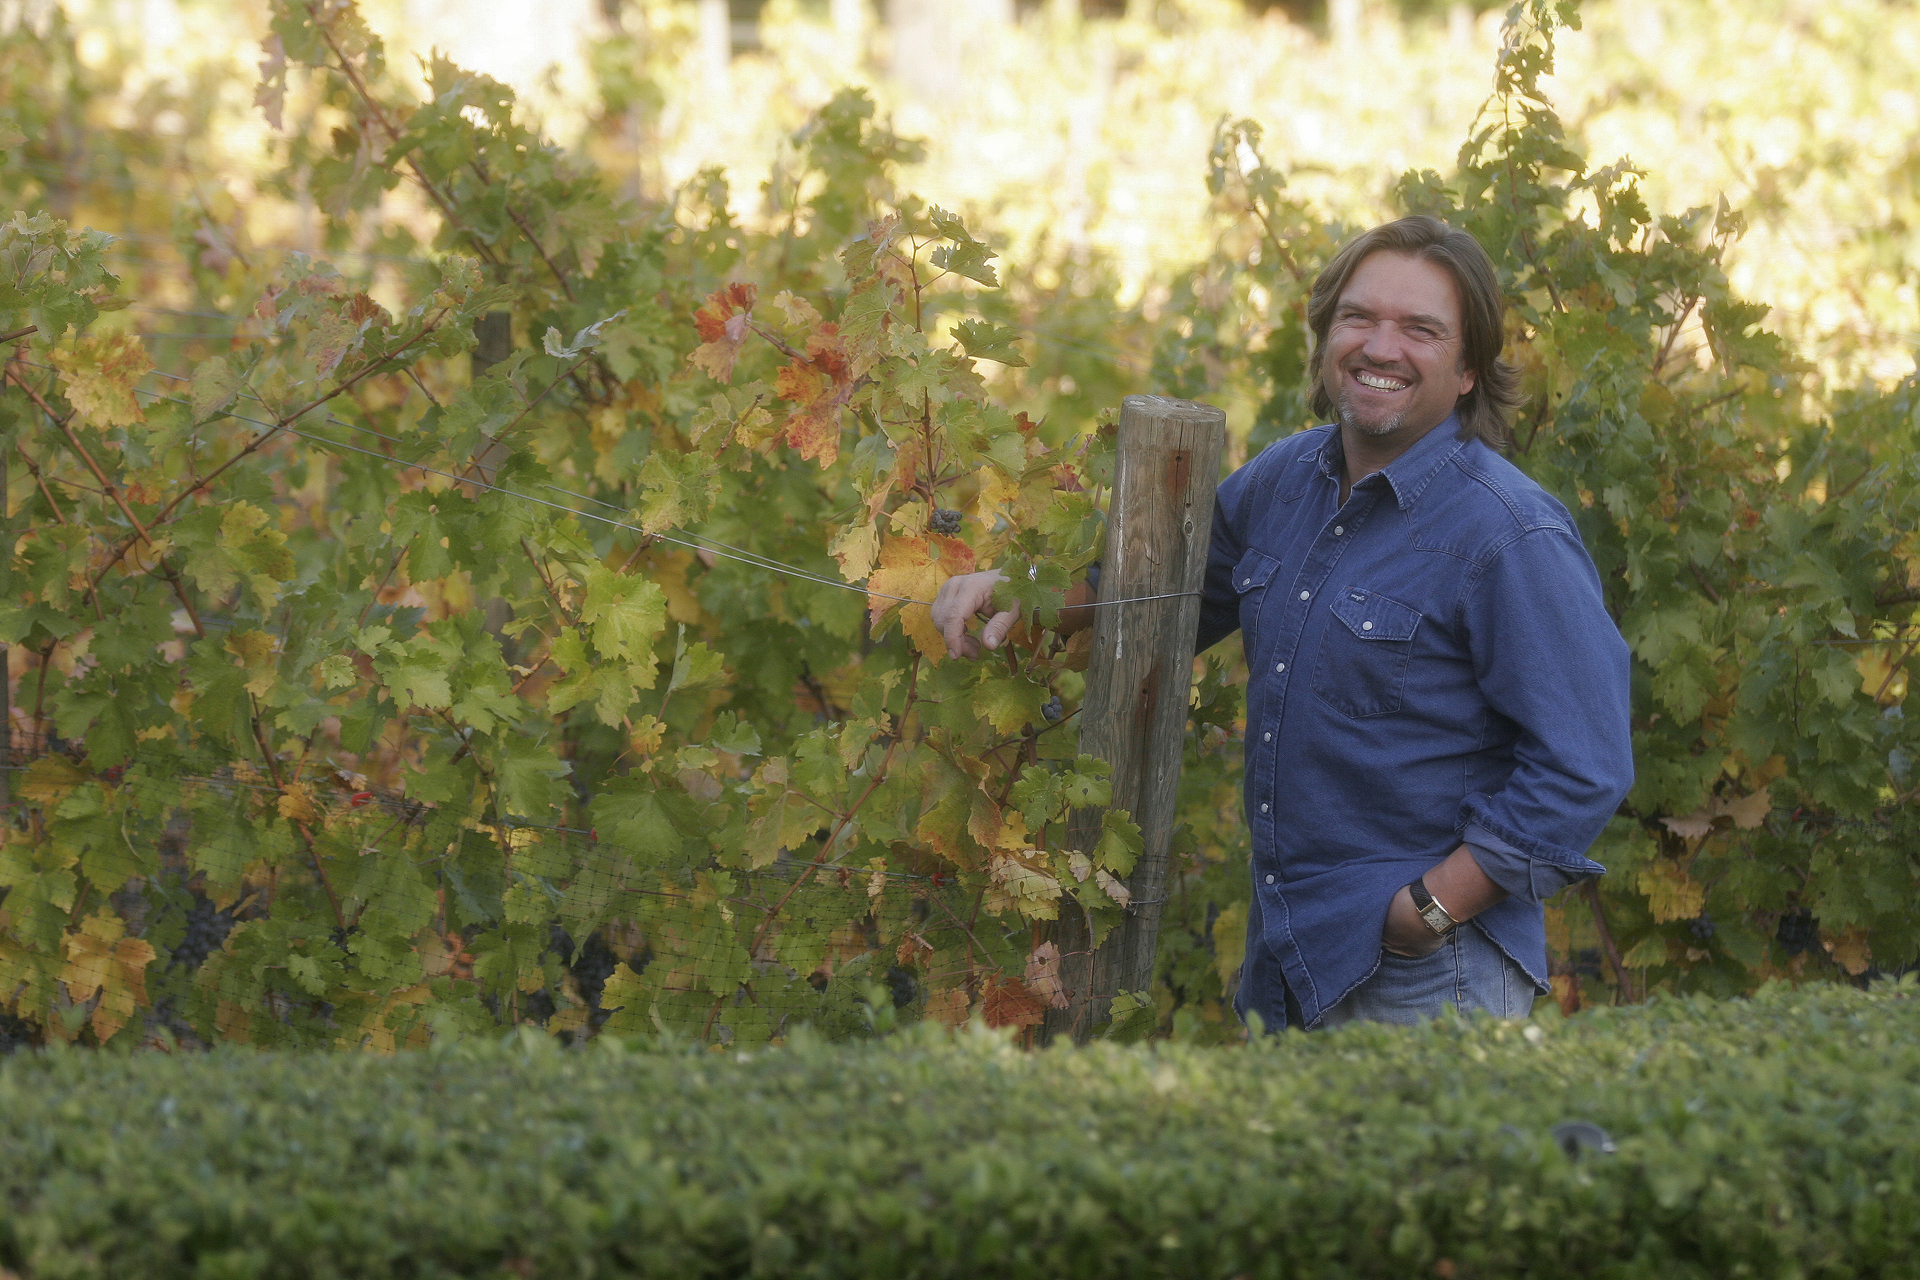 Winemaker Ron Mosley has been making wine for over 30 years and currently manages 80 vineyards located from Woodside to Gilroy, where his winery is located.